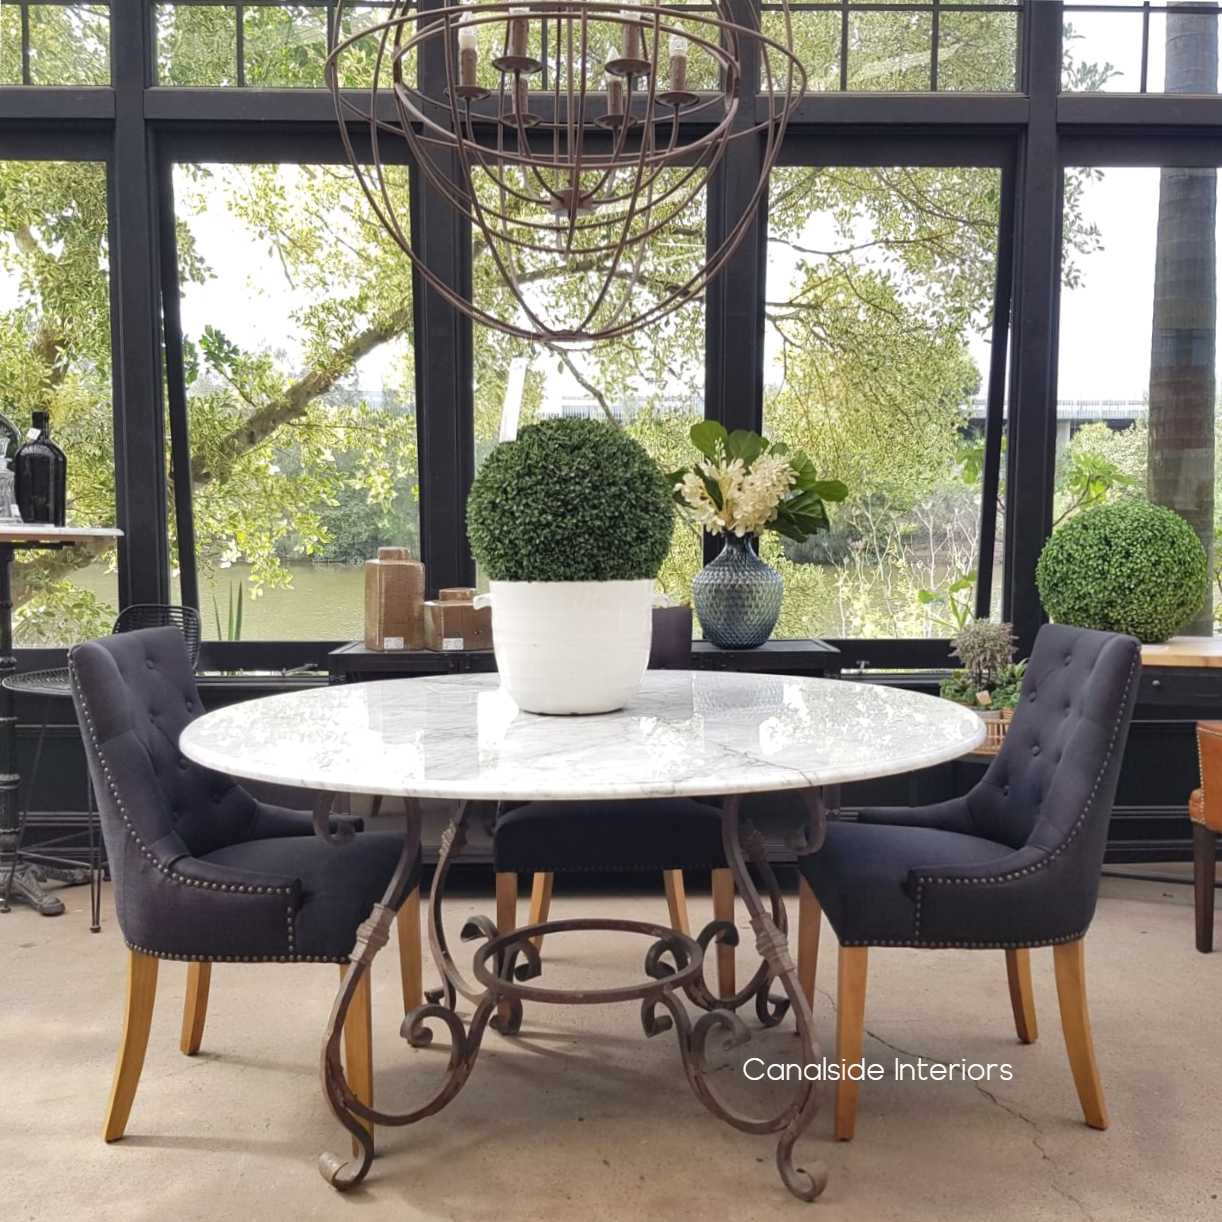 Santiago Round Dining Table With Carrara Marble Top 150cm Canalside